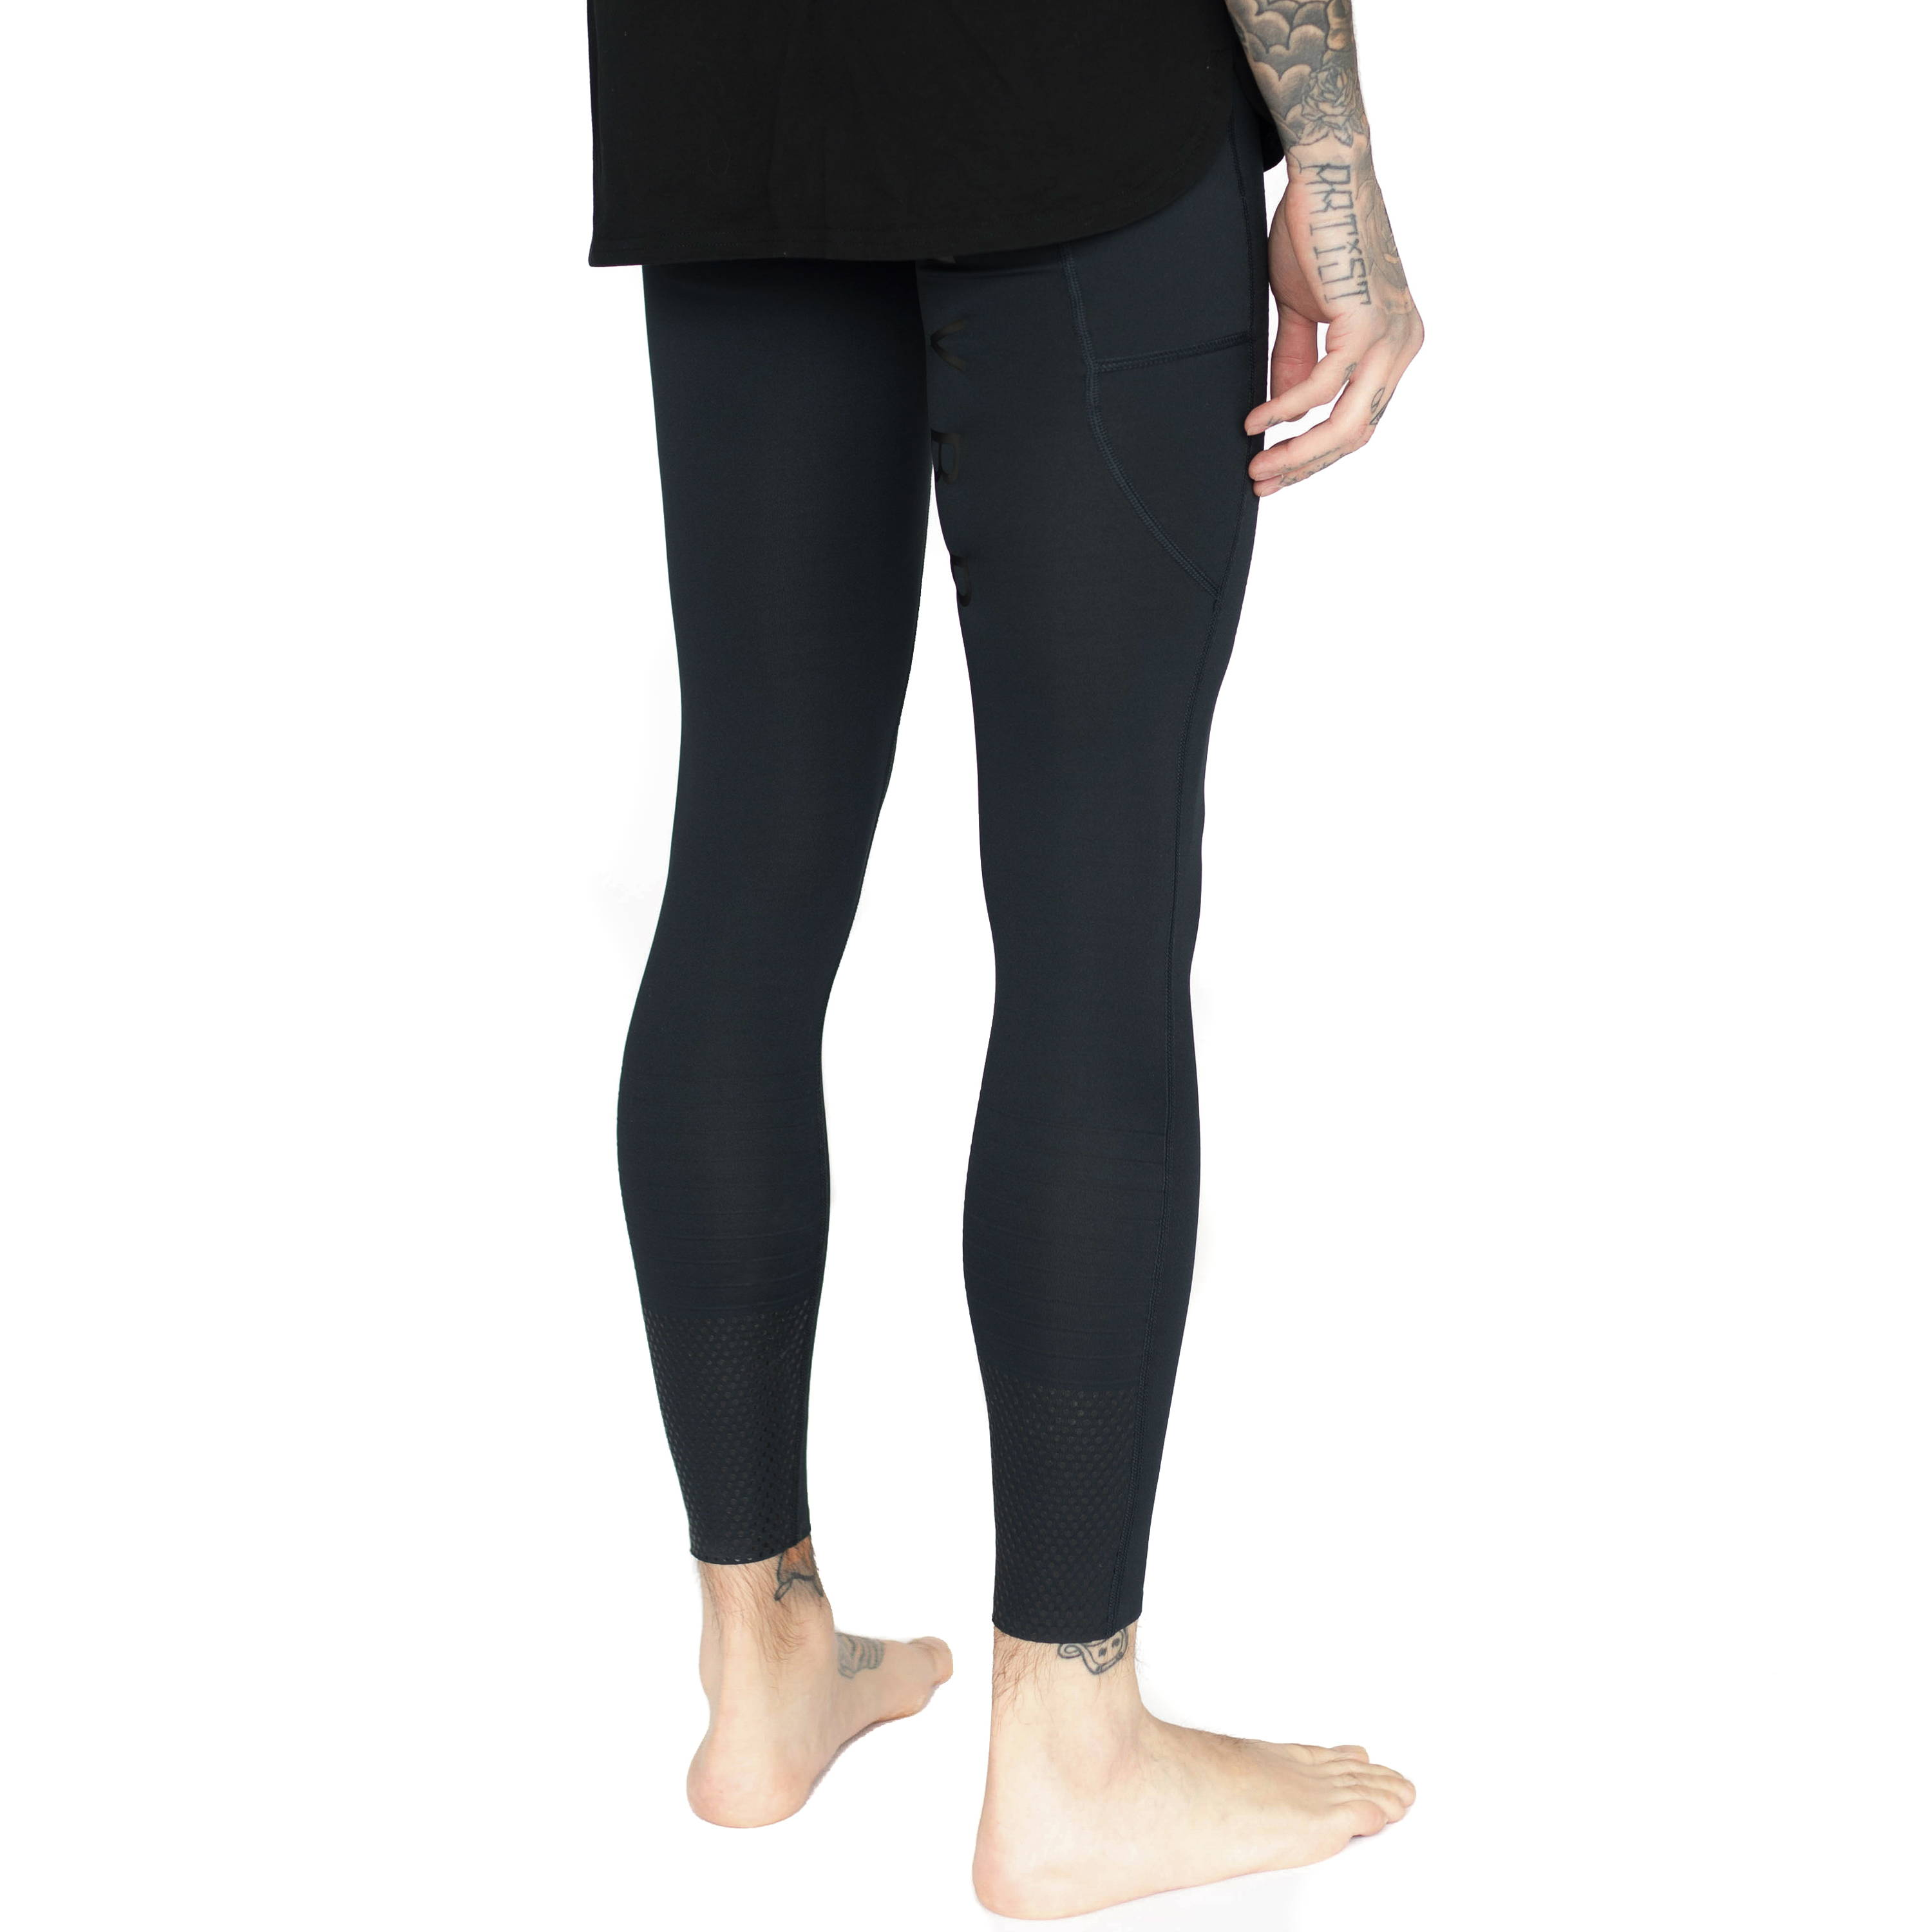 Mens-Midnight Black-Compression Tight-2